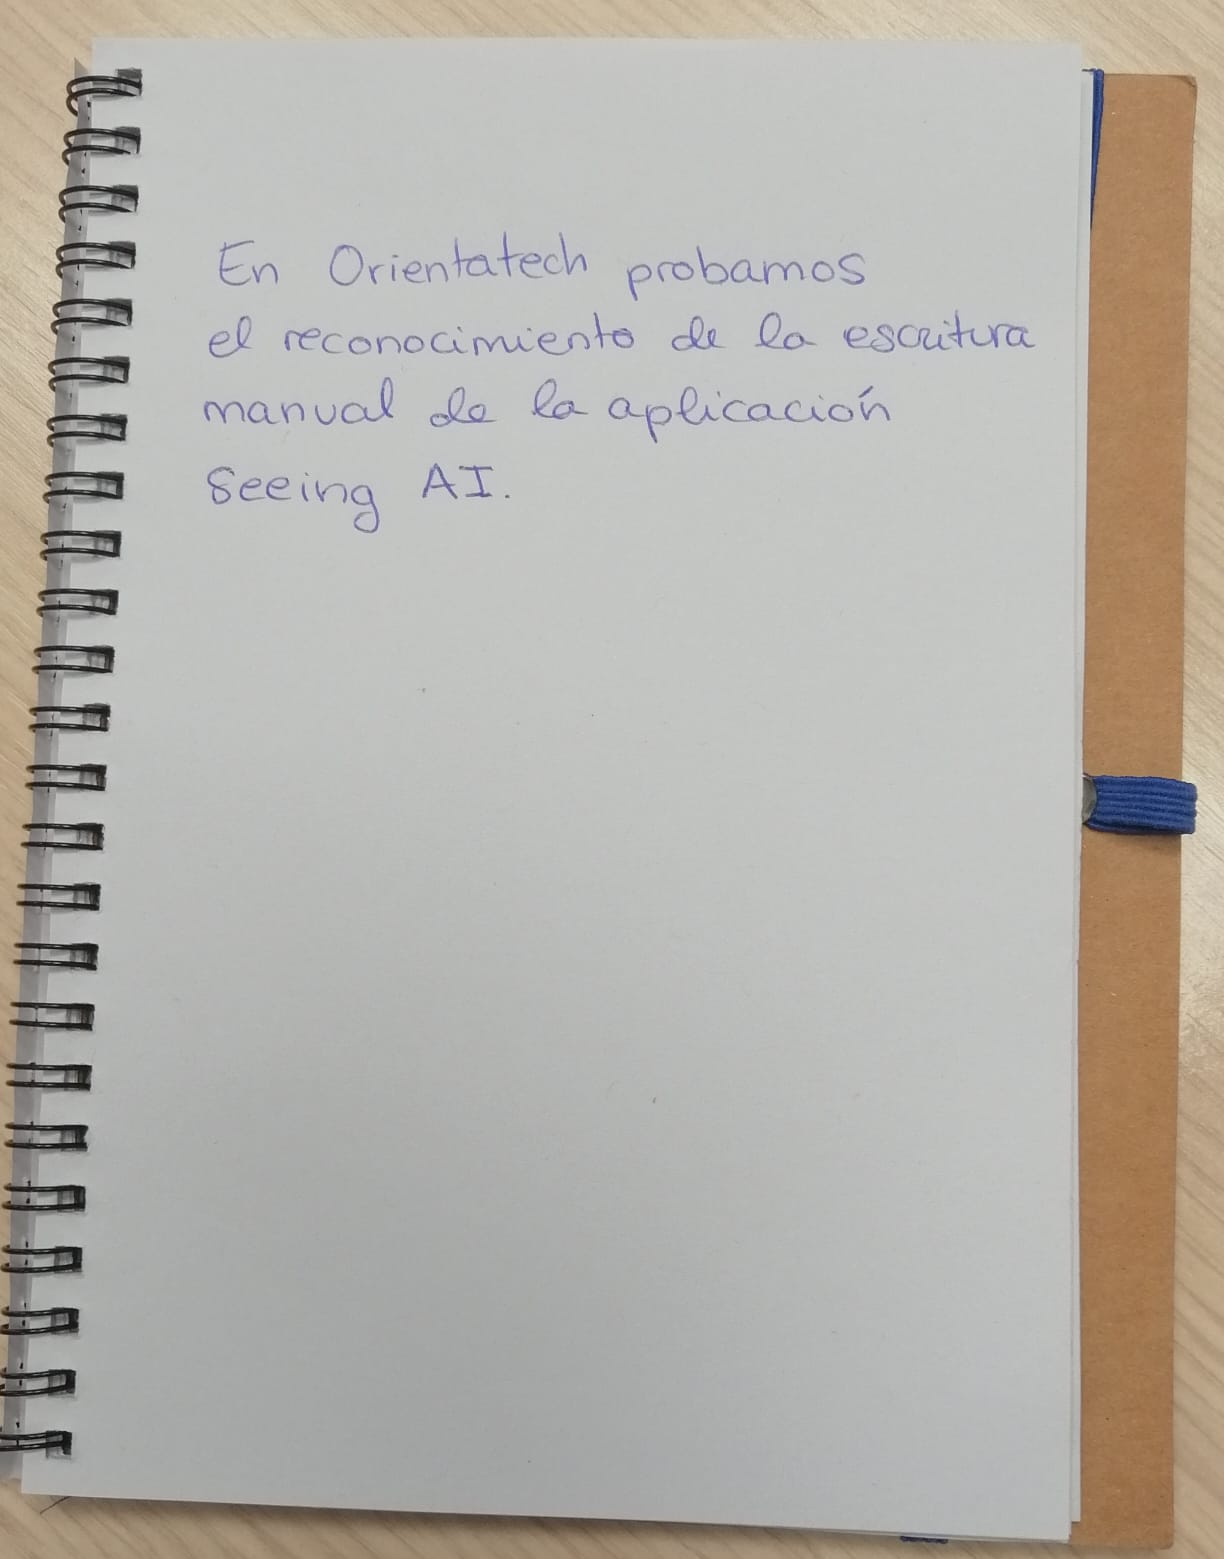 Photograph of a notebook